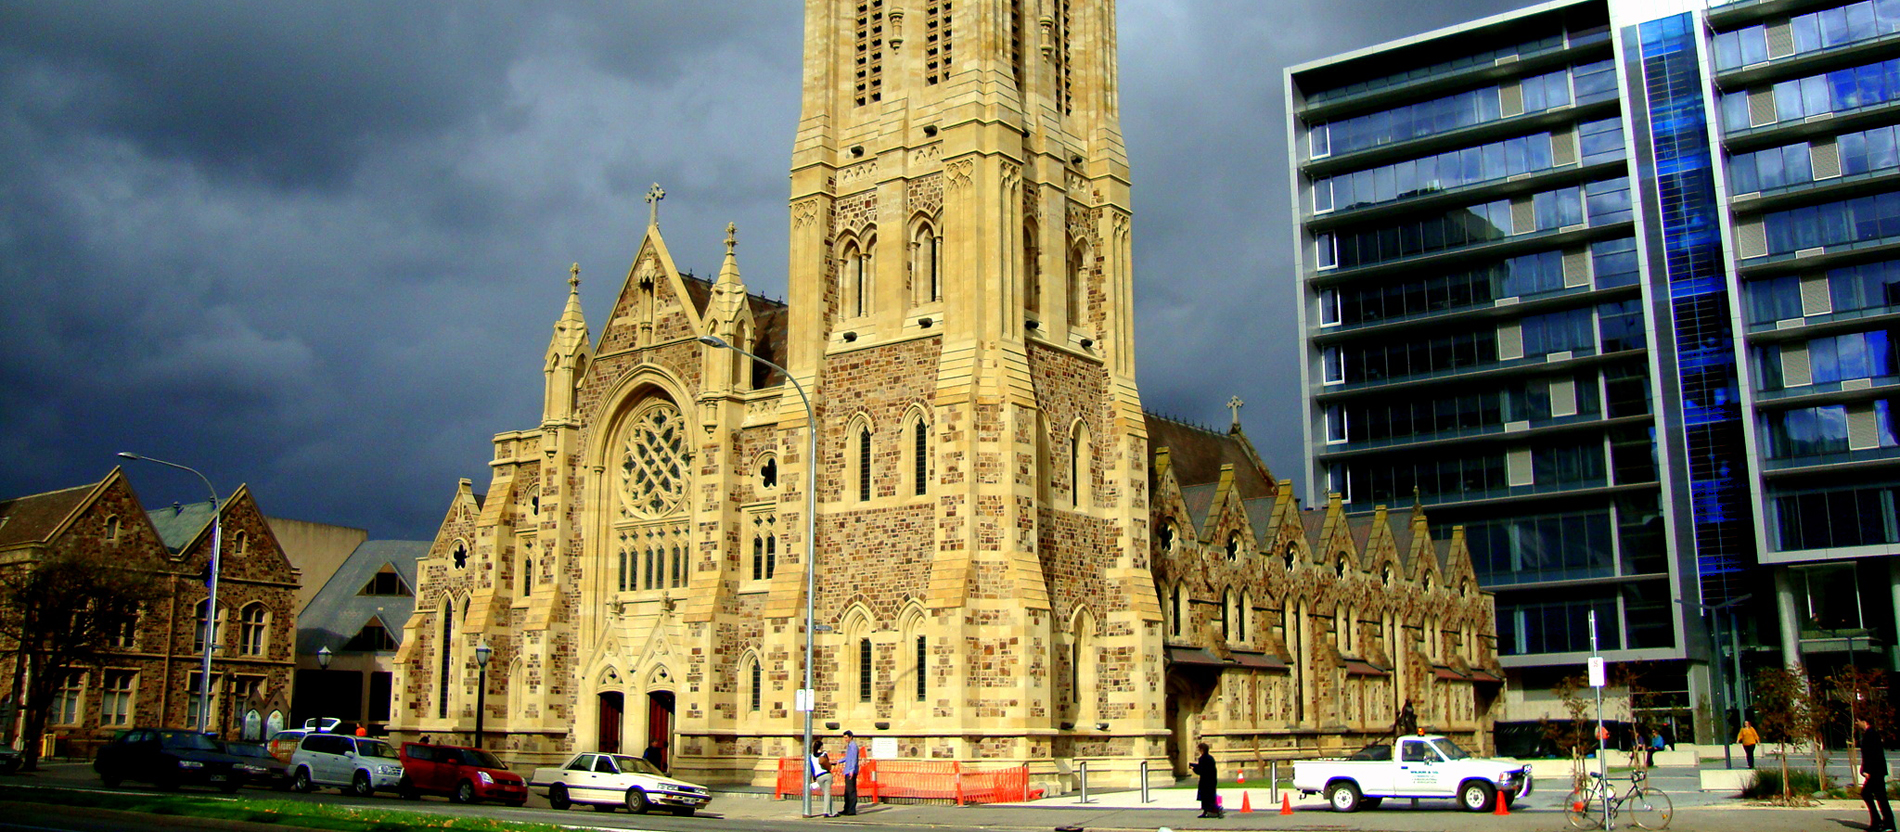 St. Francis Xavier's Cathedral in Adelaide